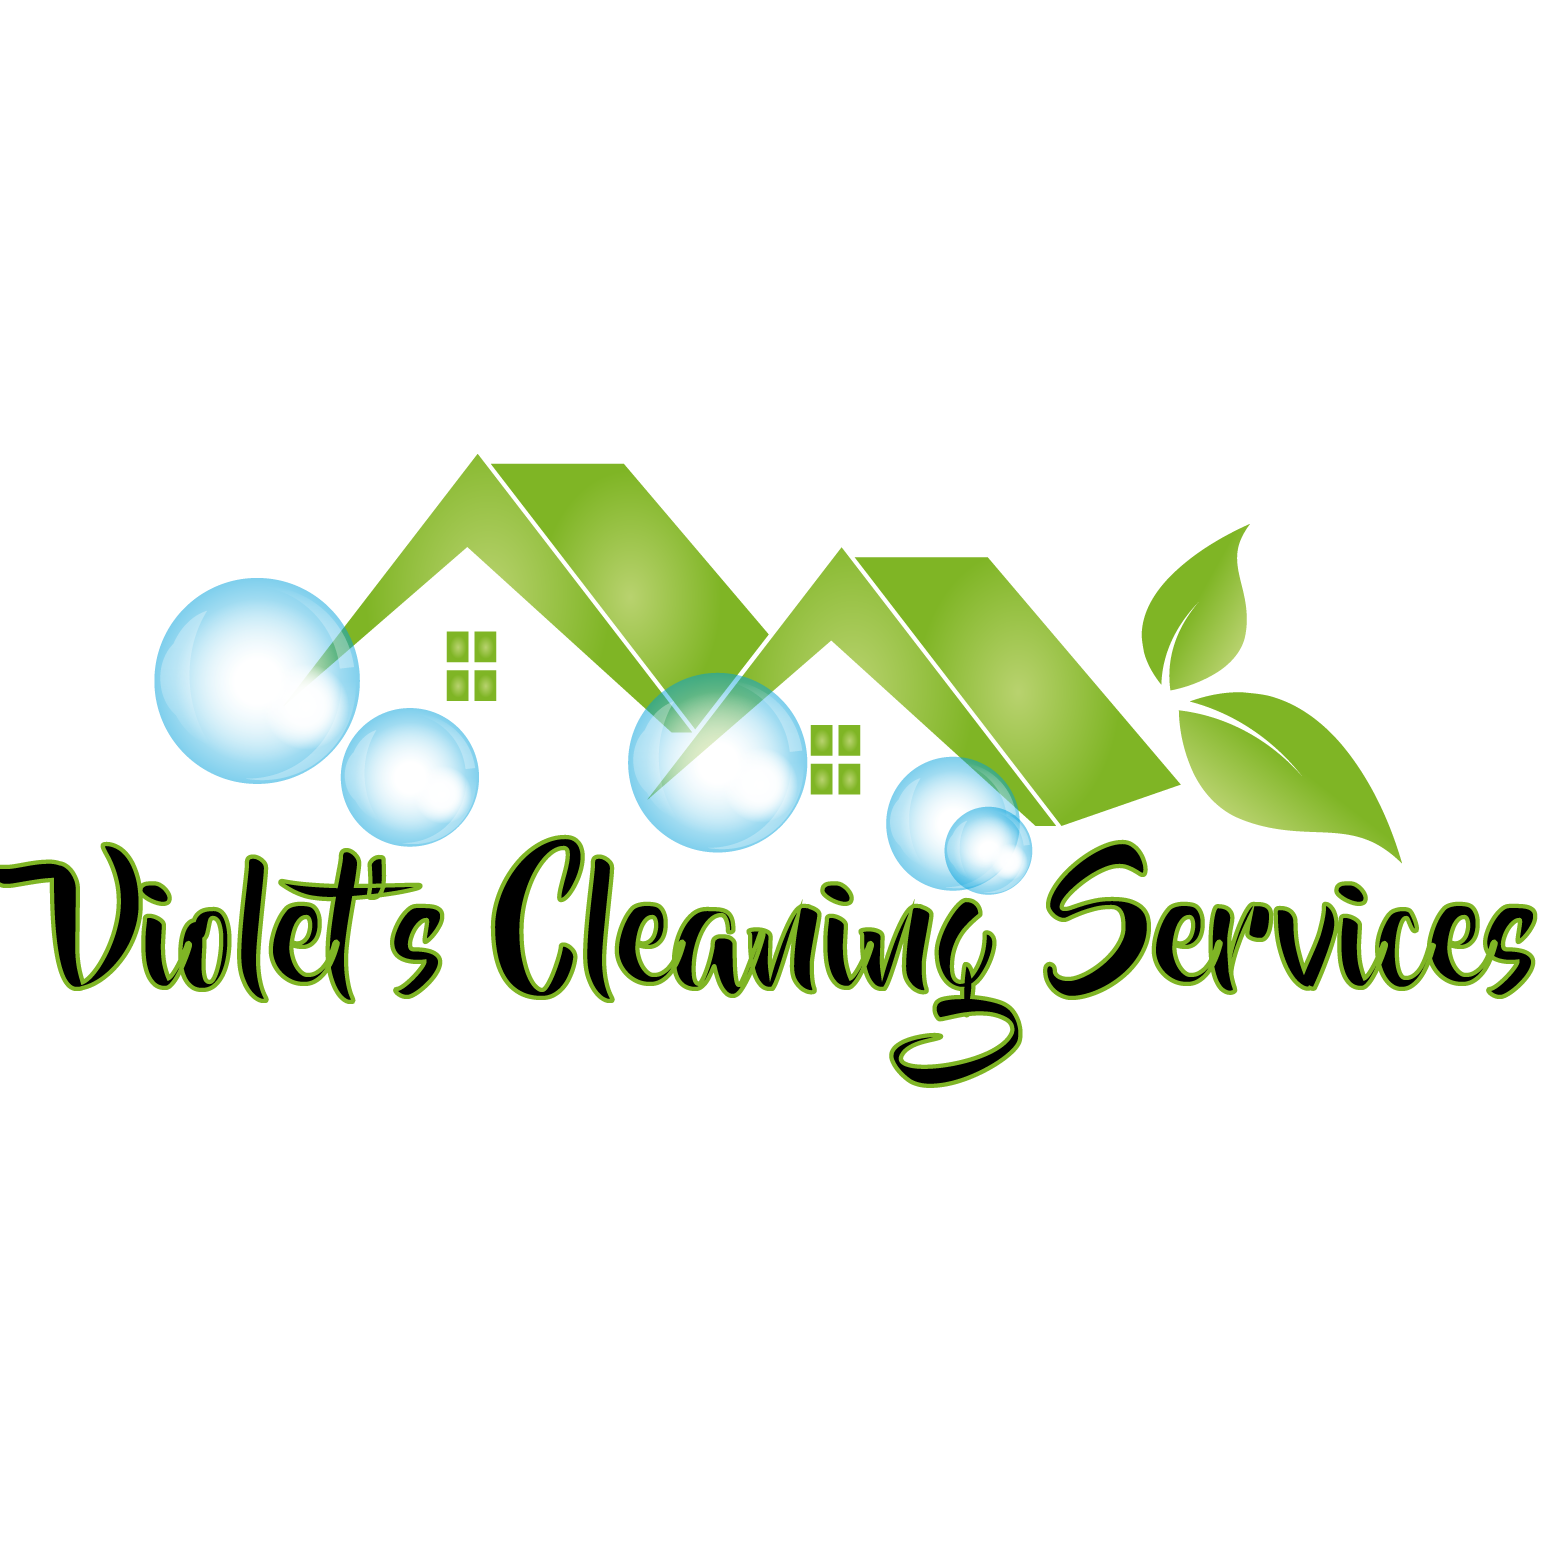 Violet's Cleaning Services